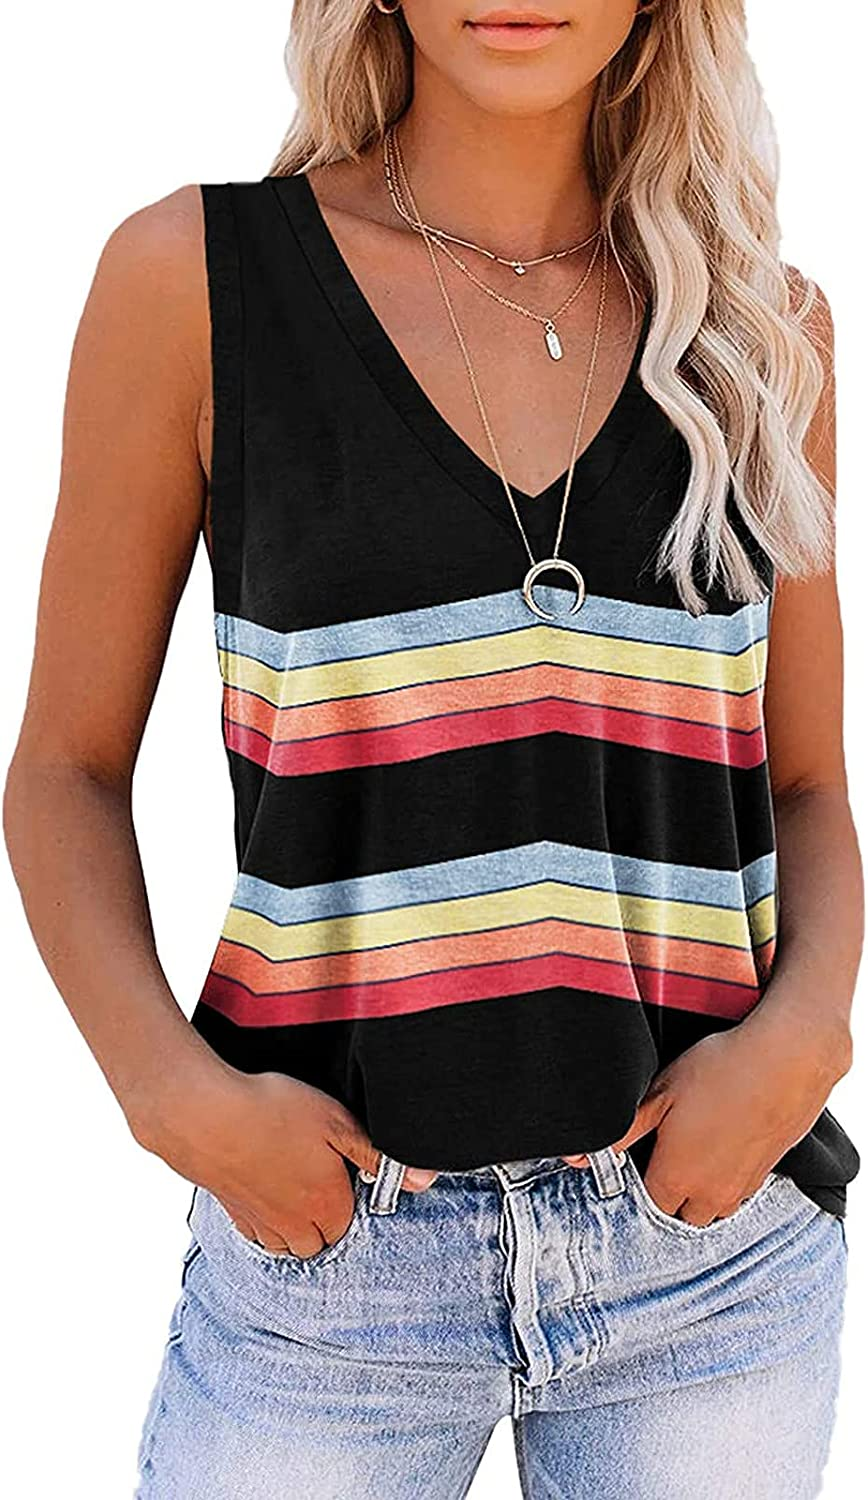 Womens Summer Casual Striped Printed T-Shirt, Fashion V-Neck Loose Sleeveless Vest Tank Tops